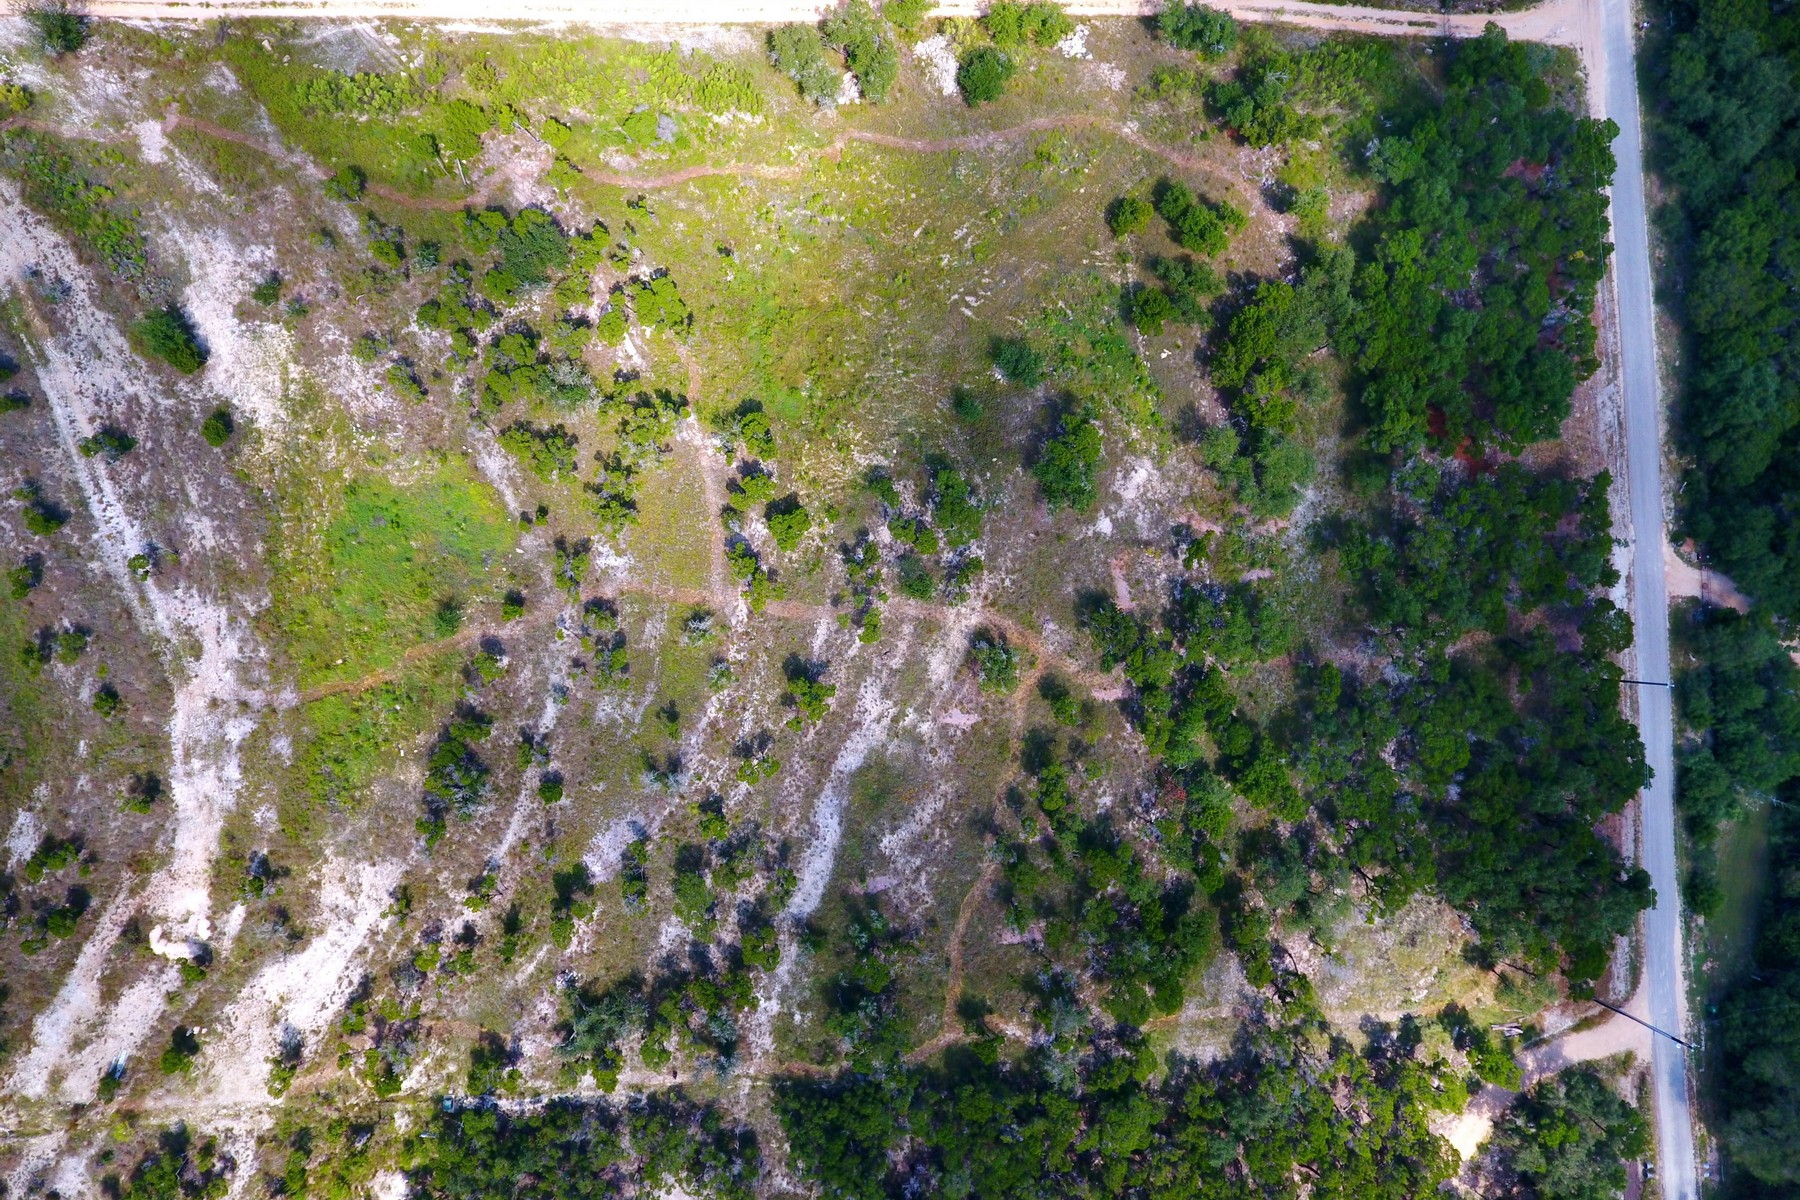 Terreno por un Venta en Unique Land Value Minutes to Austin 10 Old Baldy Trail Lot Dripping Springs, Texas 78620 Estados Unidos